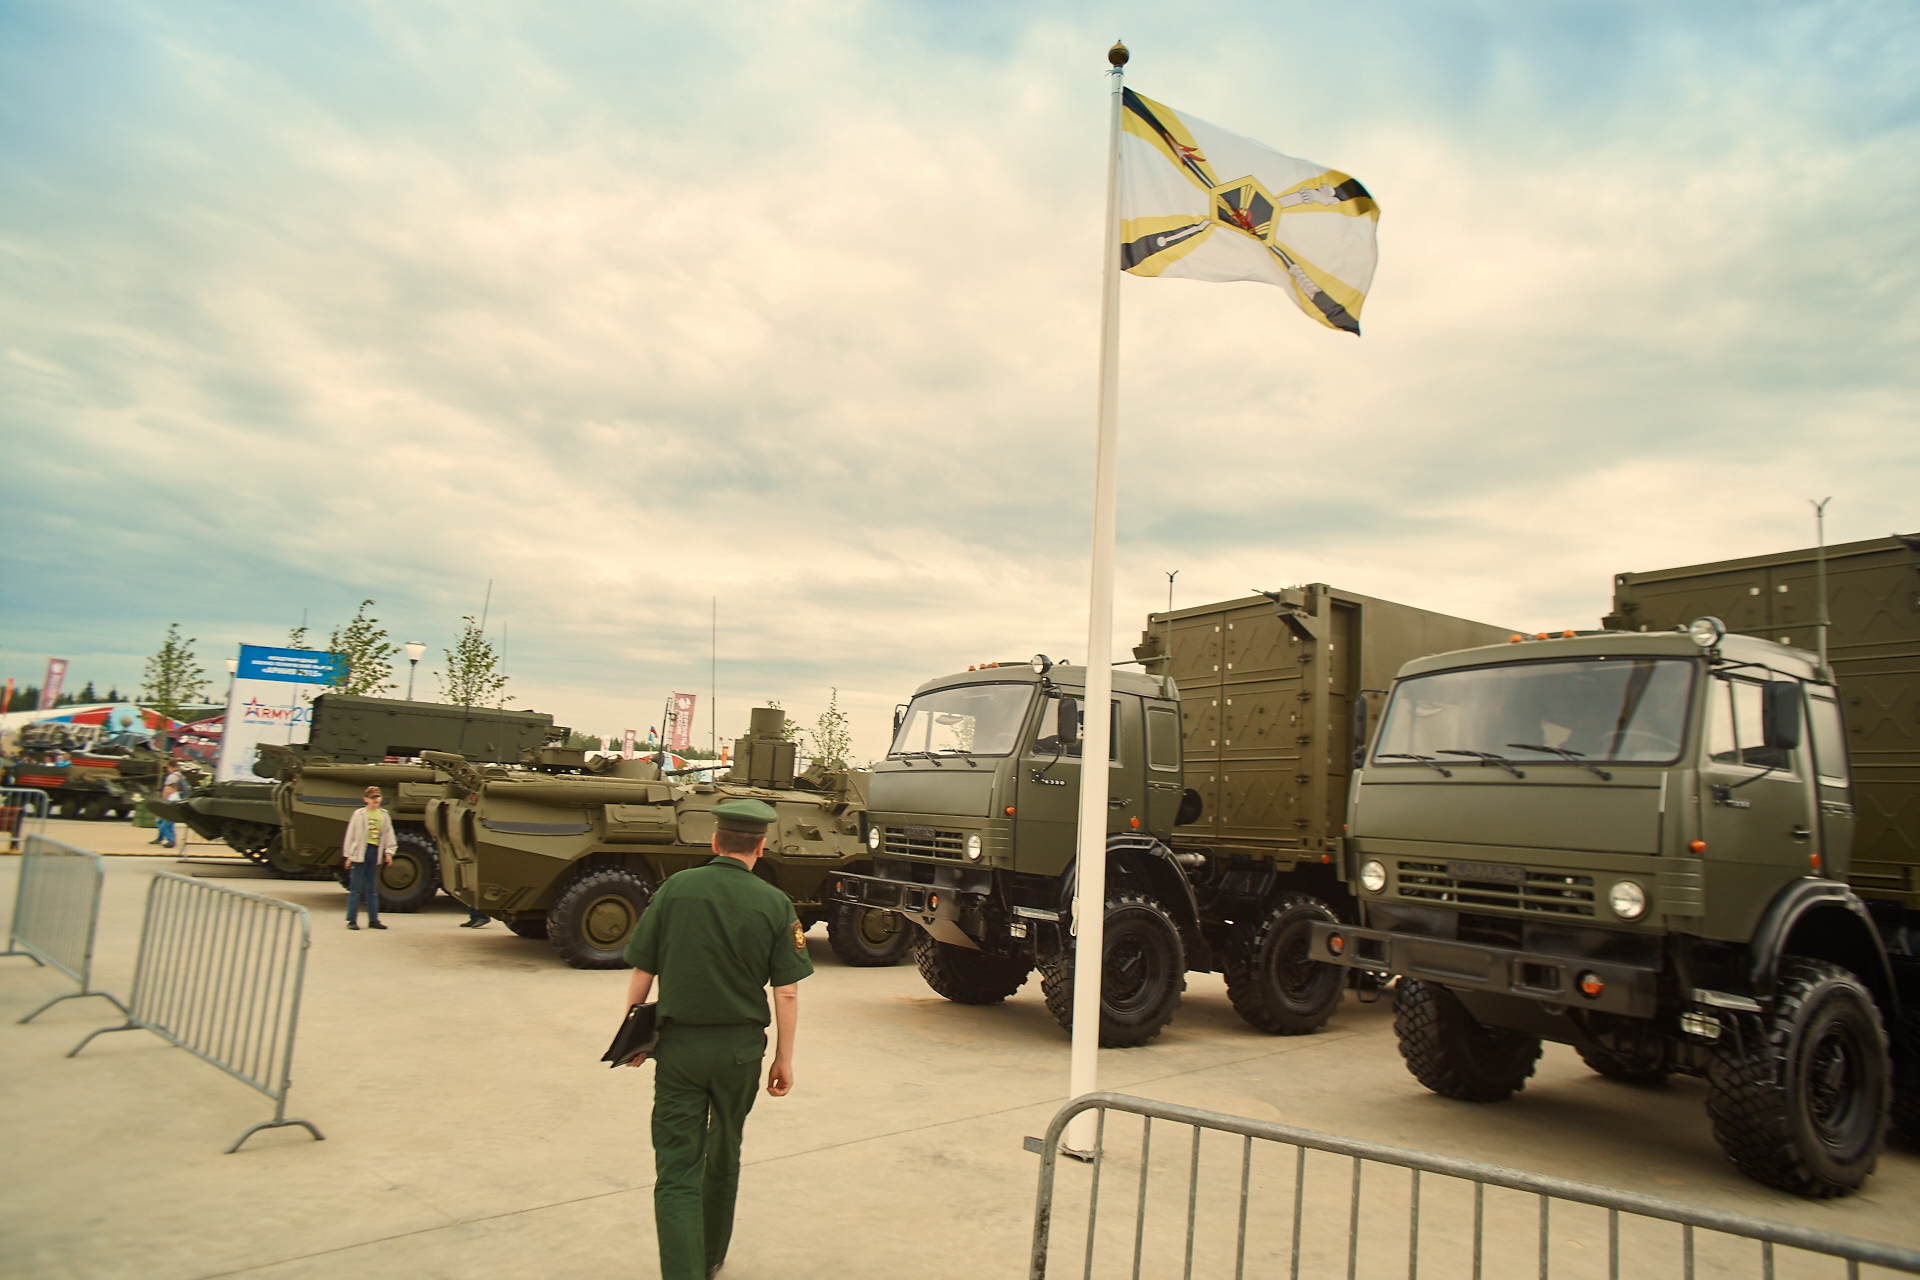 Russian Military Photos and Videos #2 - Page 37 0_a384a_dfbd7b7c_orig